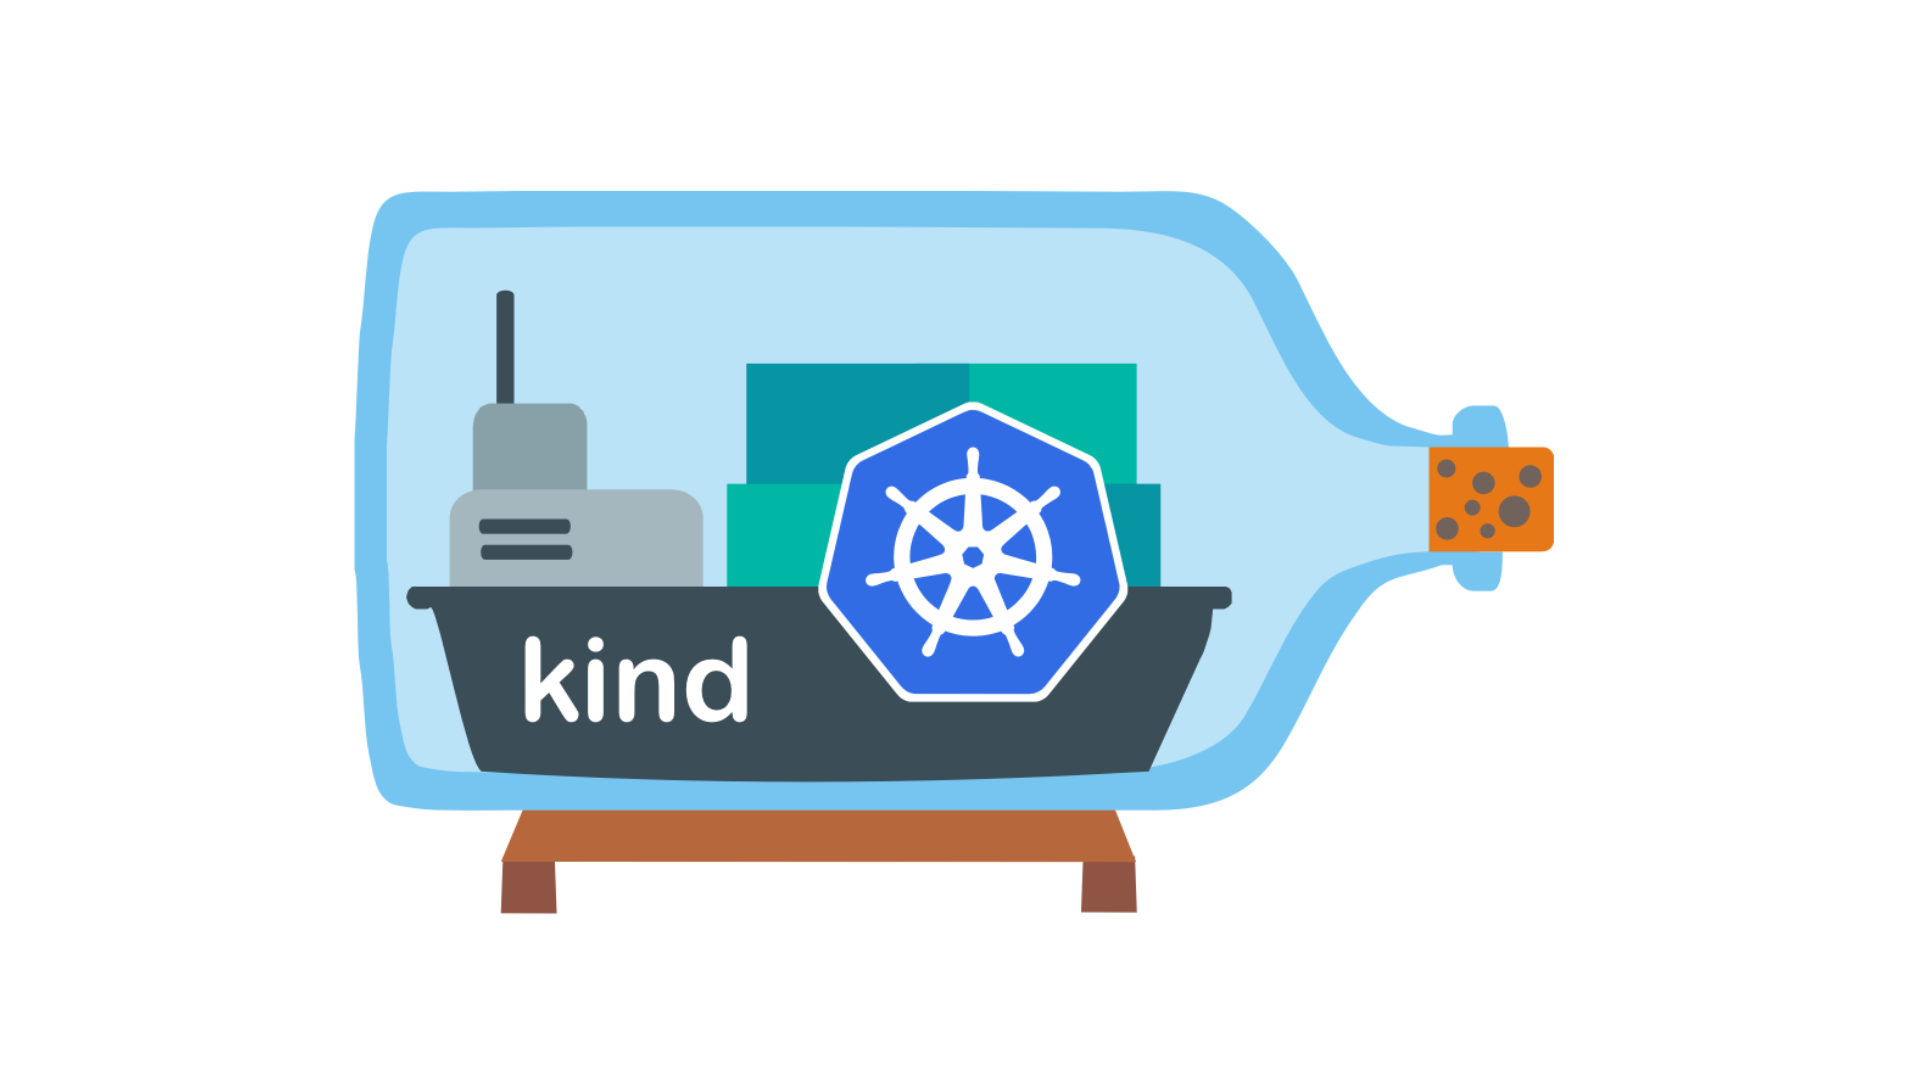 Running Kubernetes In The CI Pipeline For Integration and End-To-End Tests front image